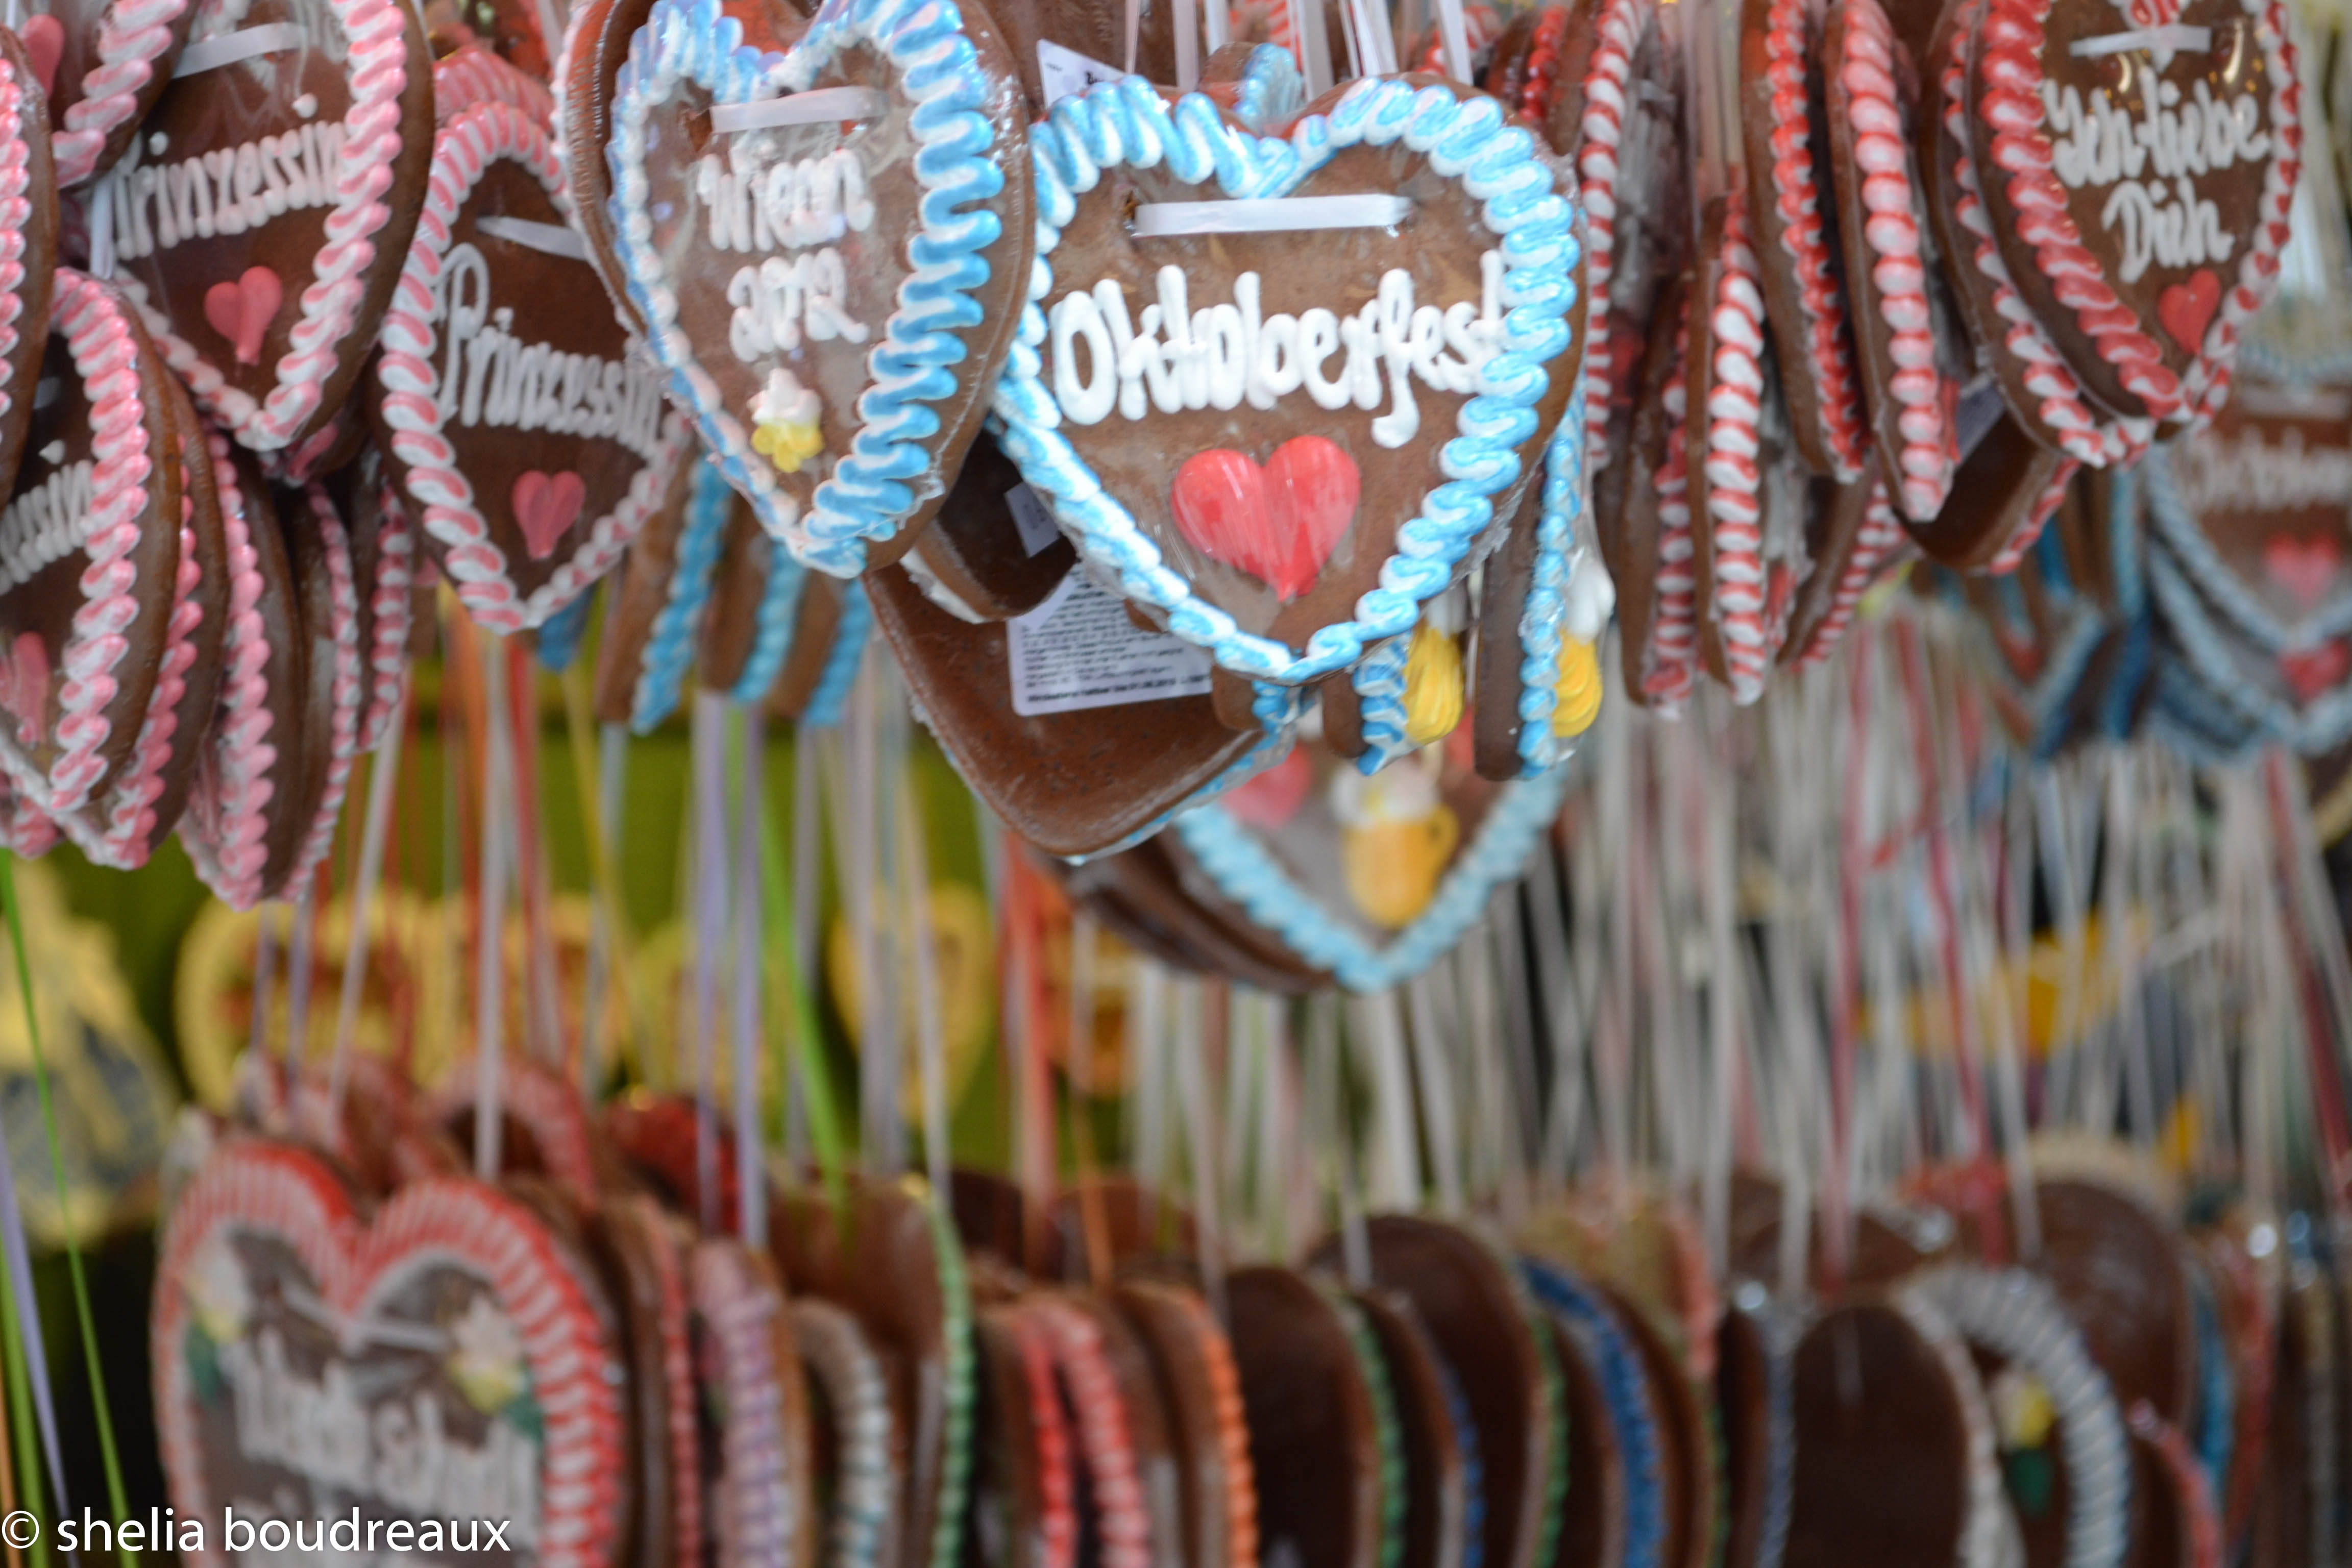 Gingerbread Cookies Munich Oktoberfest